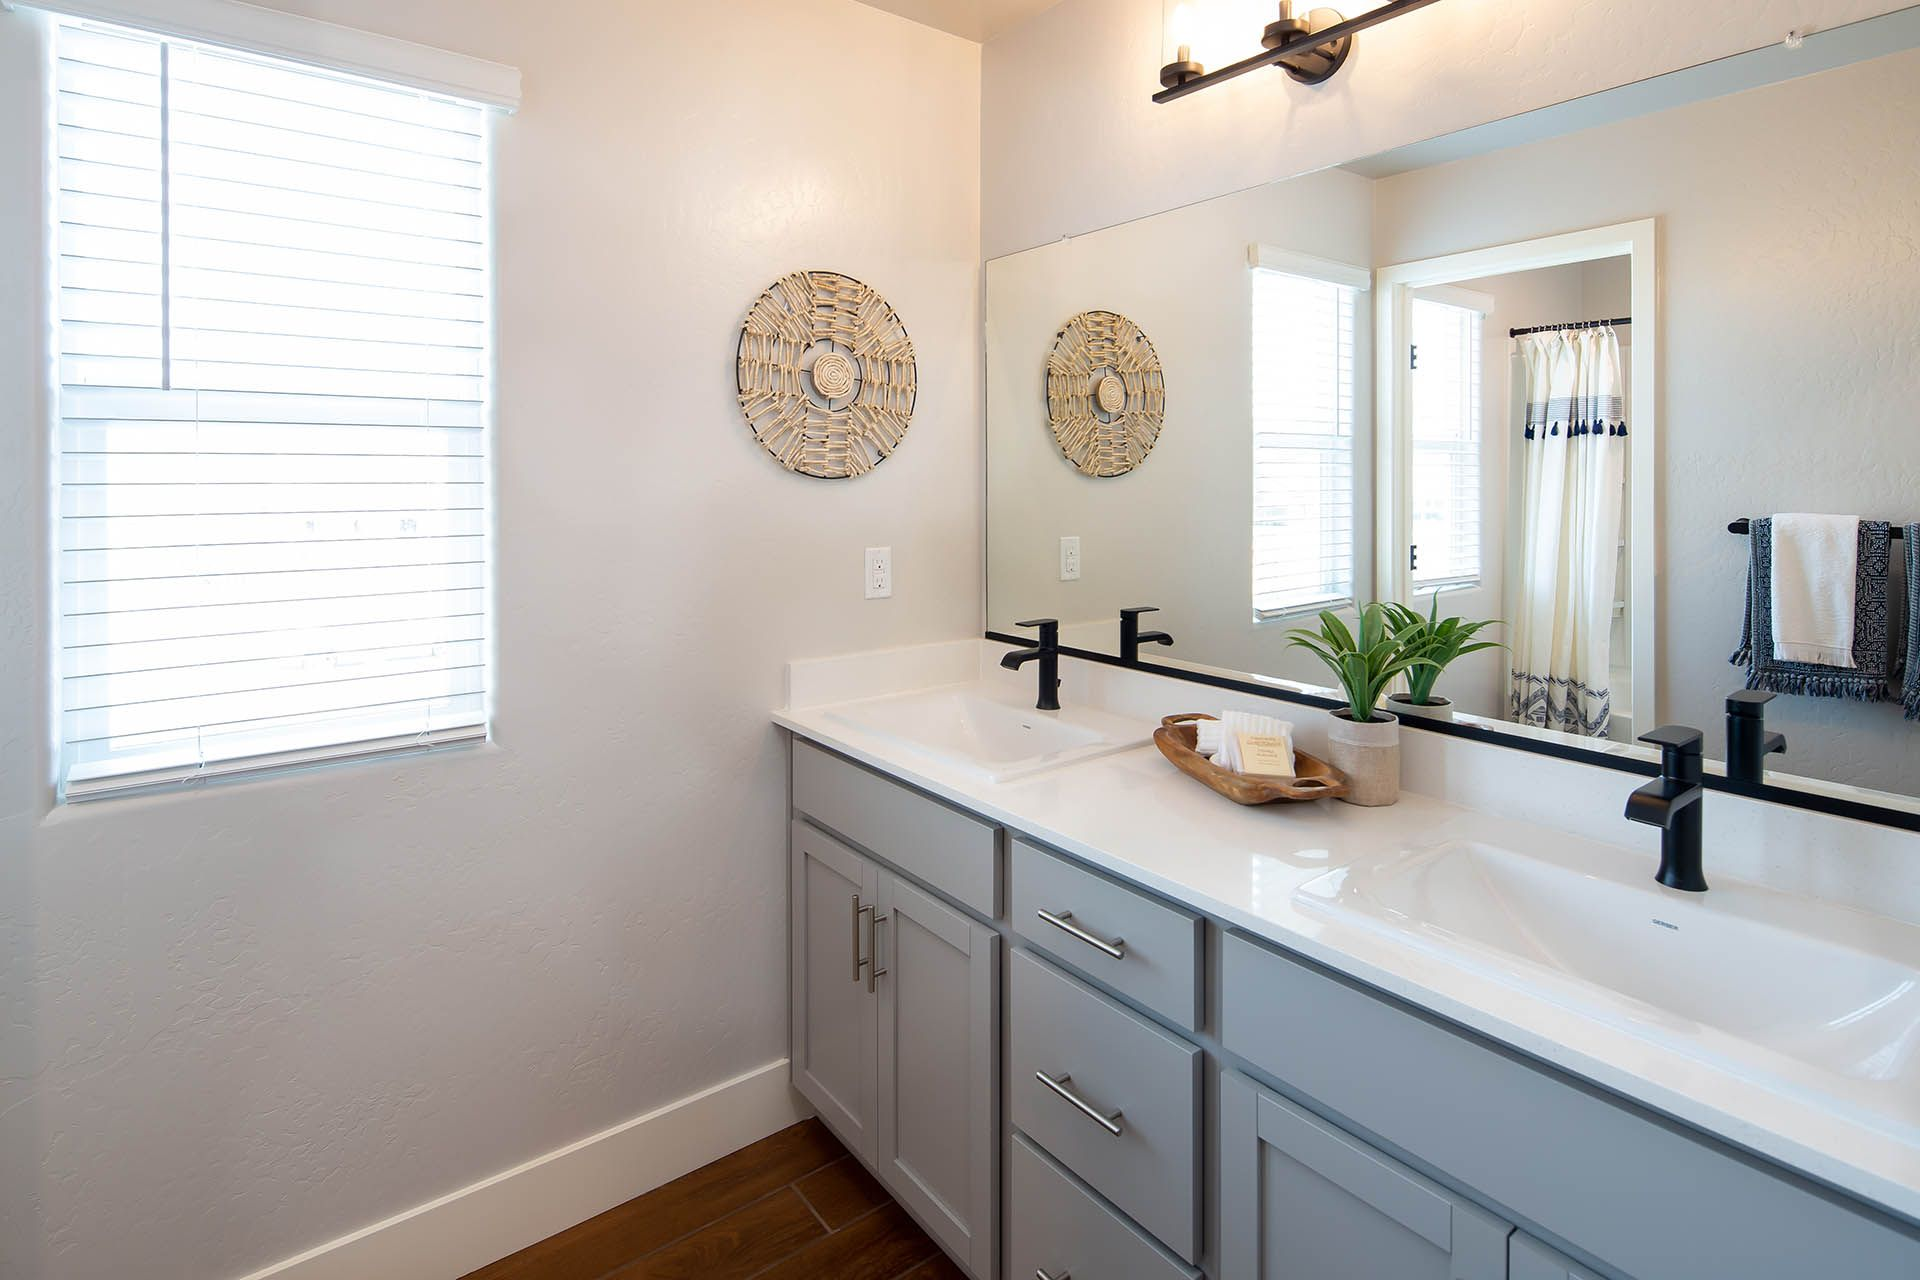 Bathroom featured in the Monroe By D.R. Horton in Merced, CA